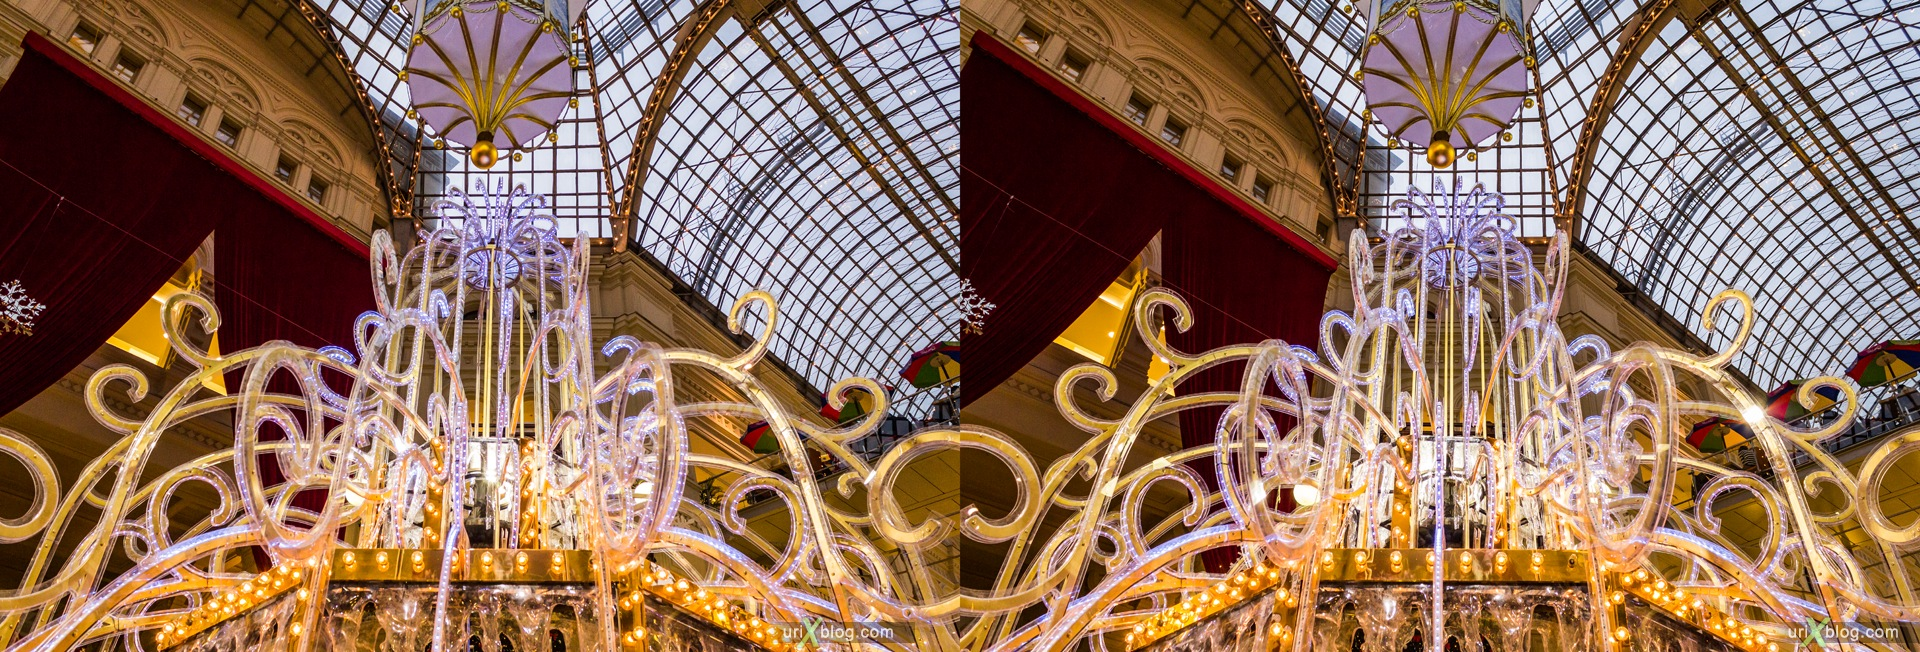 2013, Moscow, Russia, GUM, fountain, shop, mall, 3D, stereo pair, cross-eyed, crossview, cross view stereo pair, stereoscopic